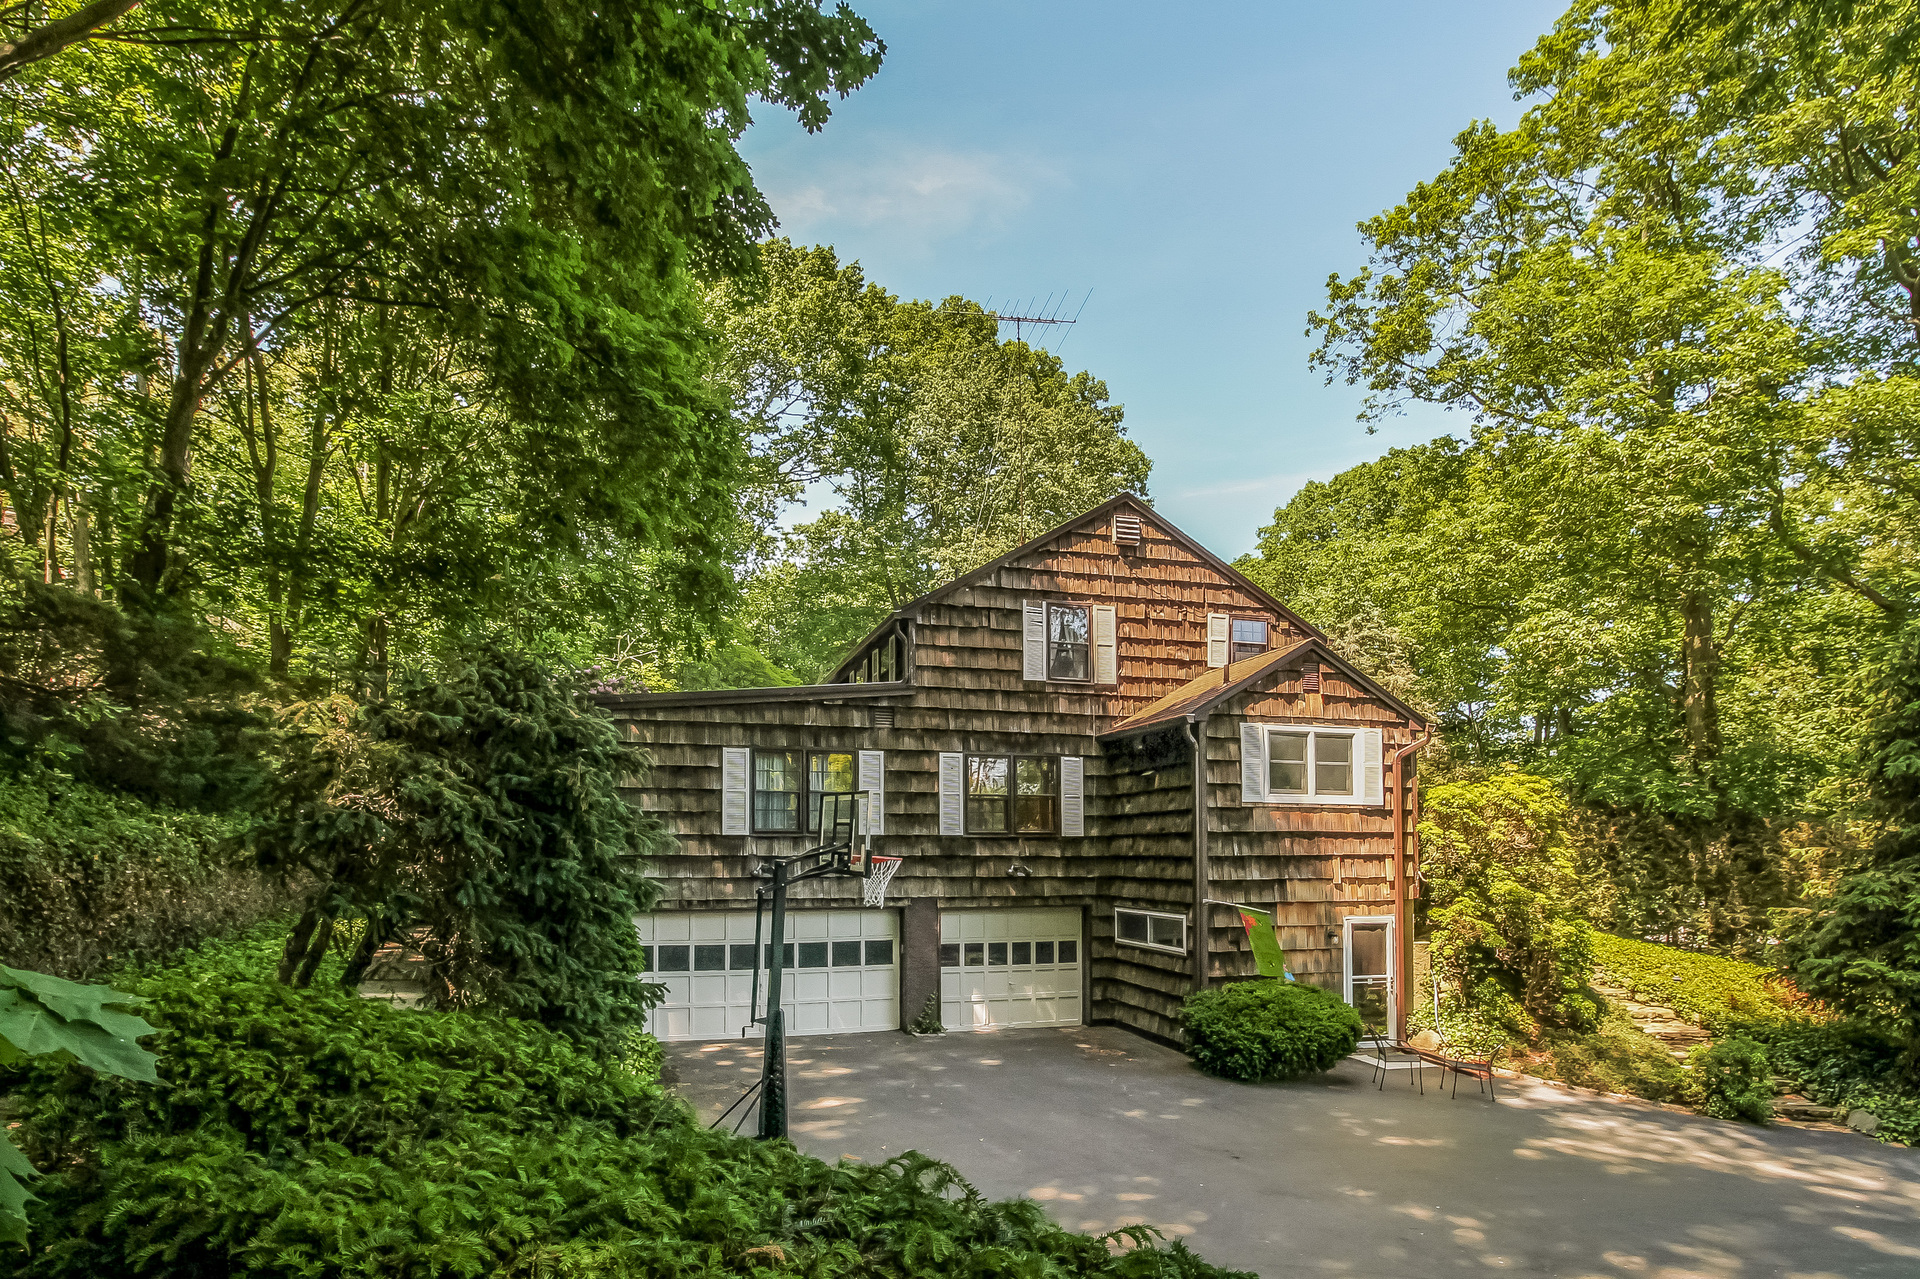 Single Family Home for Sale at Colonial 56 Turkey Ln Cold Spring Harbor, New York 11724 United States